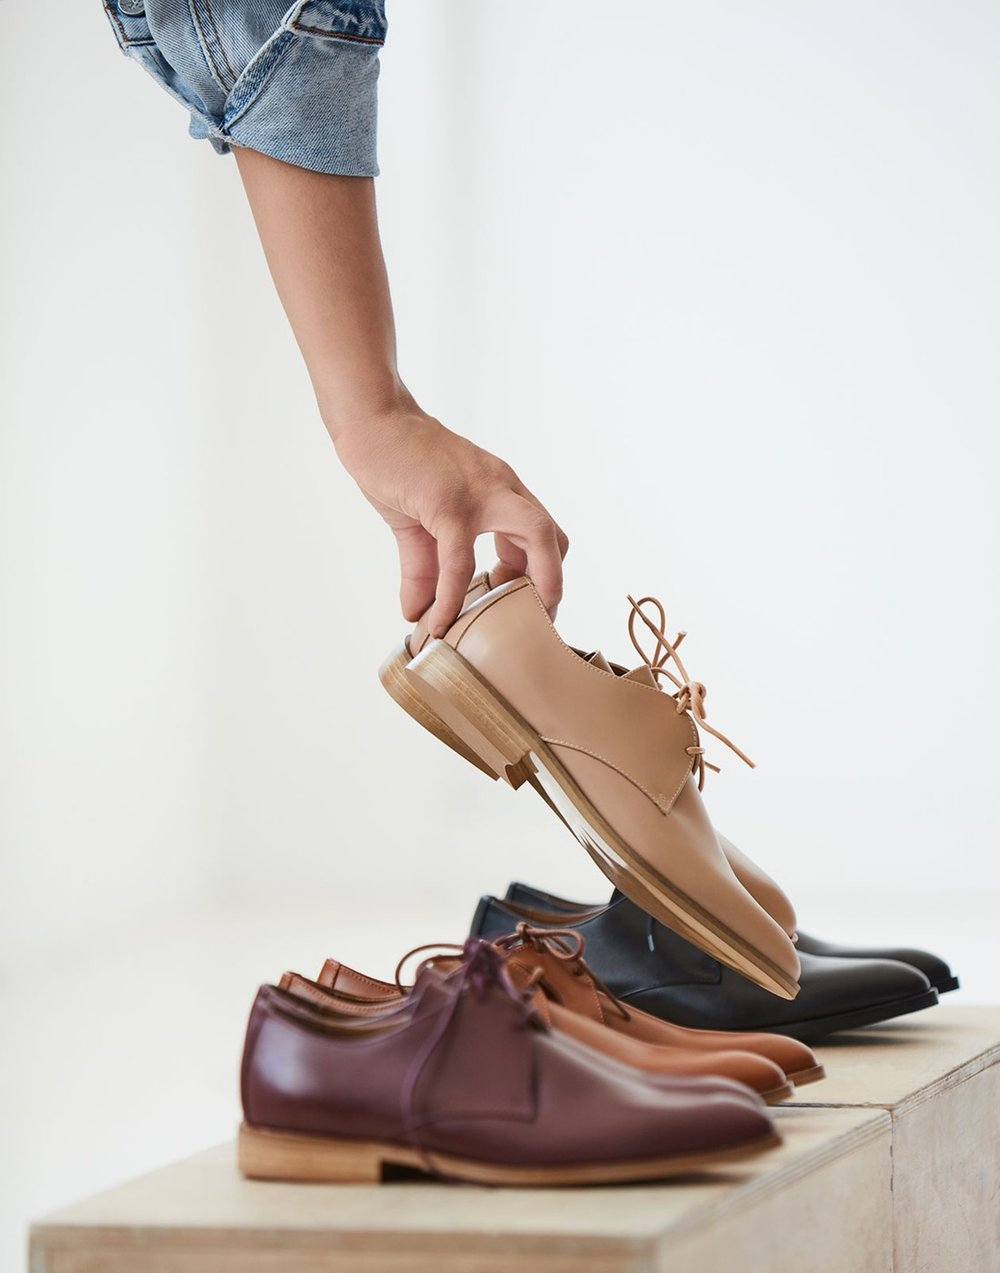 """Everlanehas introduced their new classic Modern Oxfords. Made from Italian leather with tapered toe and ¾"""" heels, these smart looking classics dresses up any casual wardrobe."""